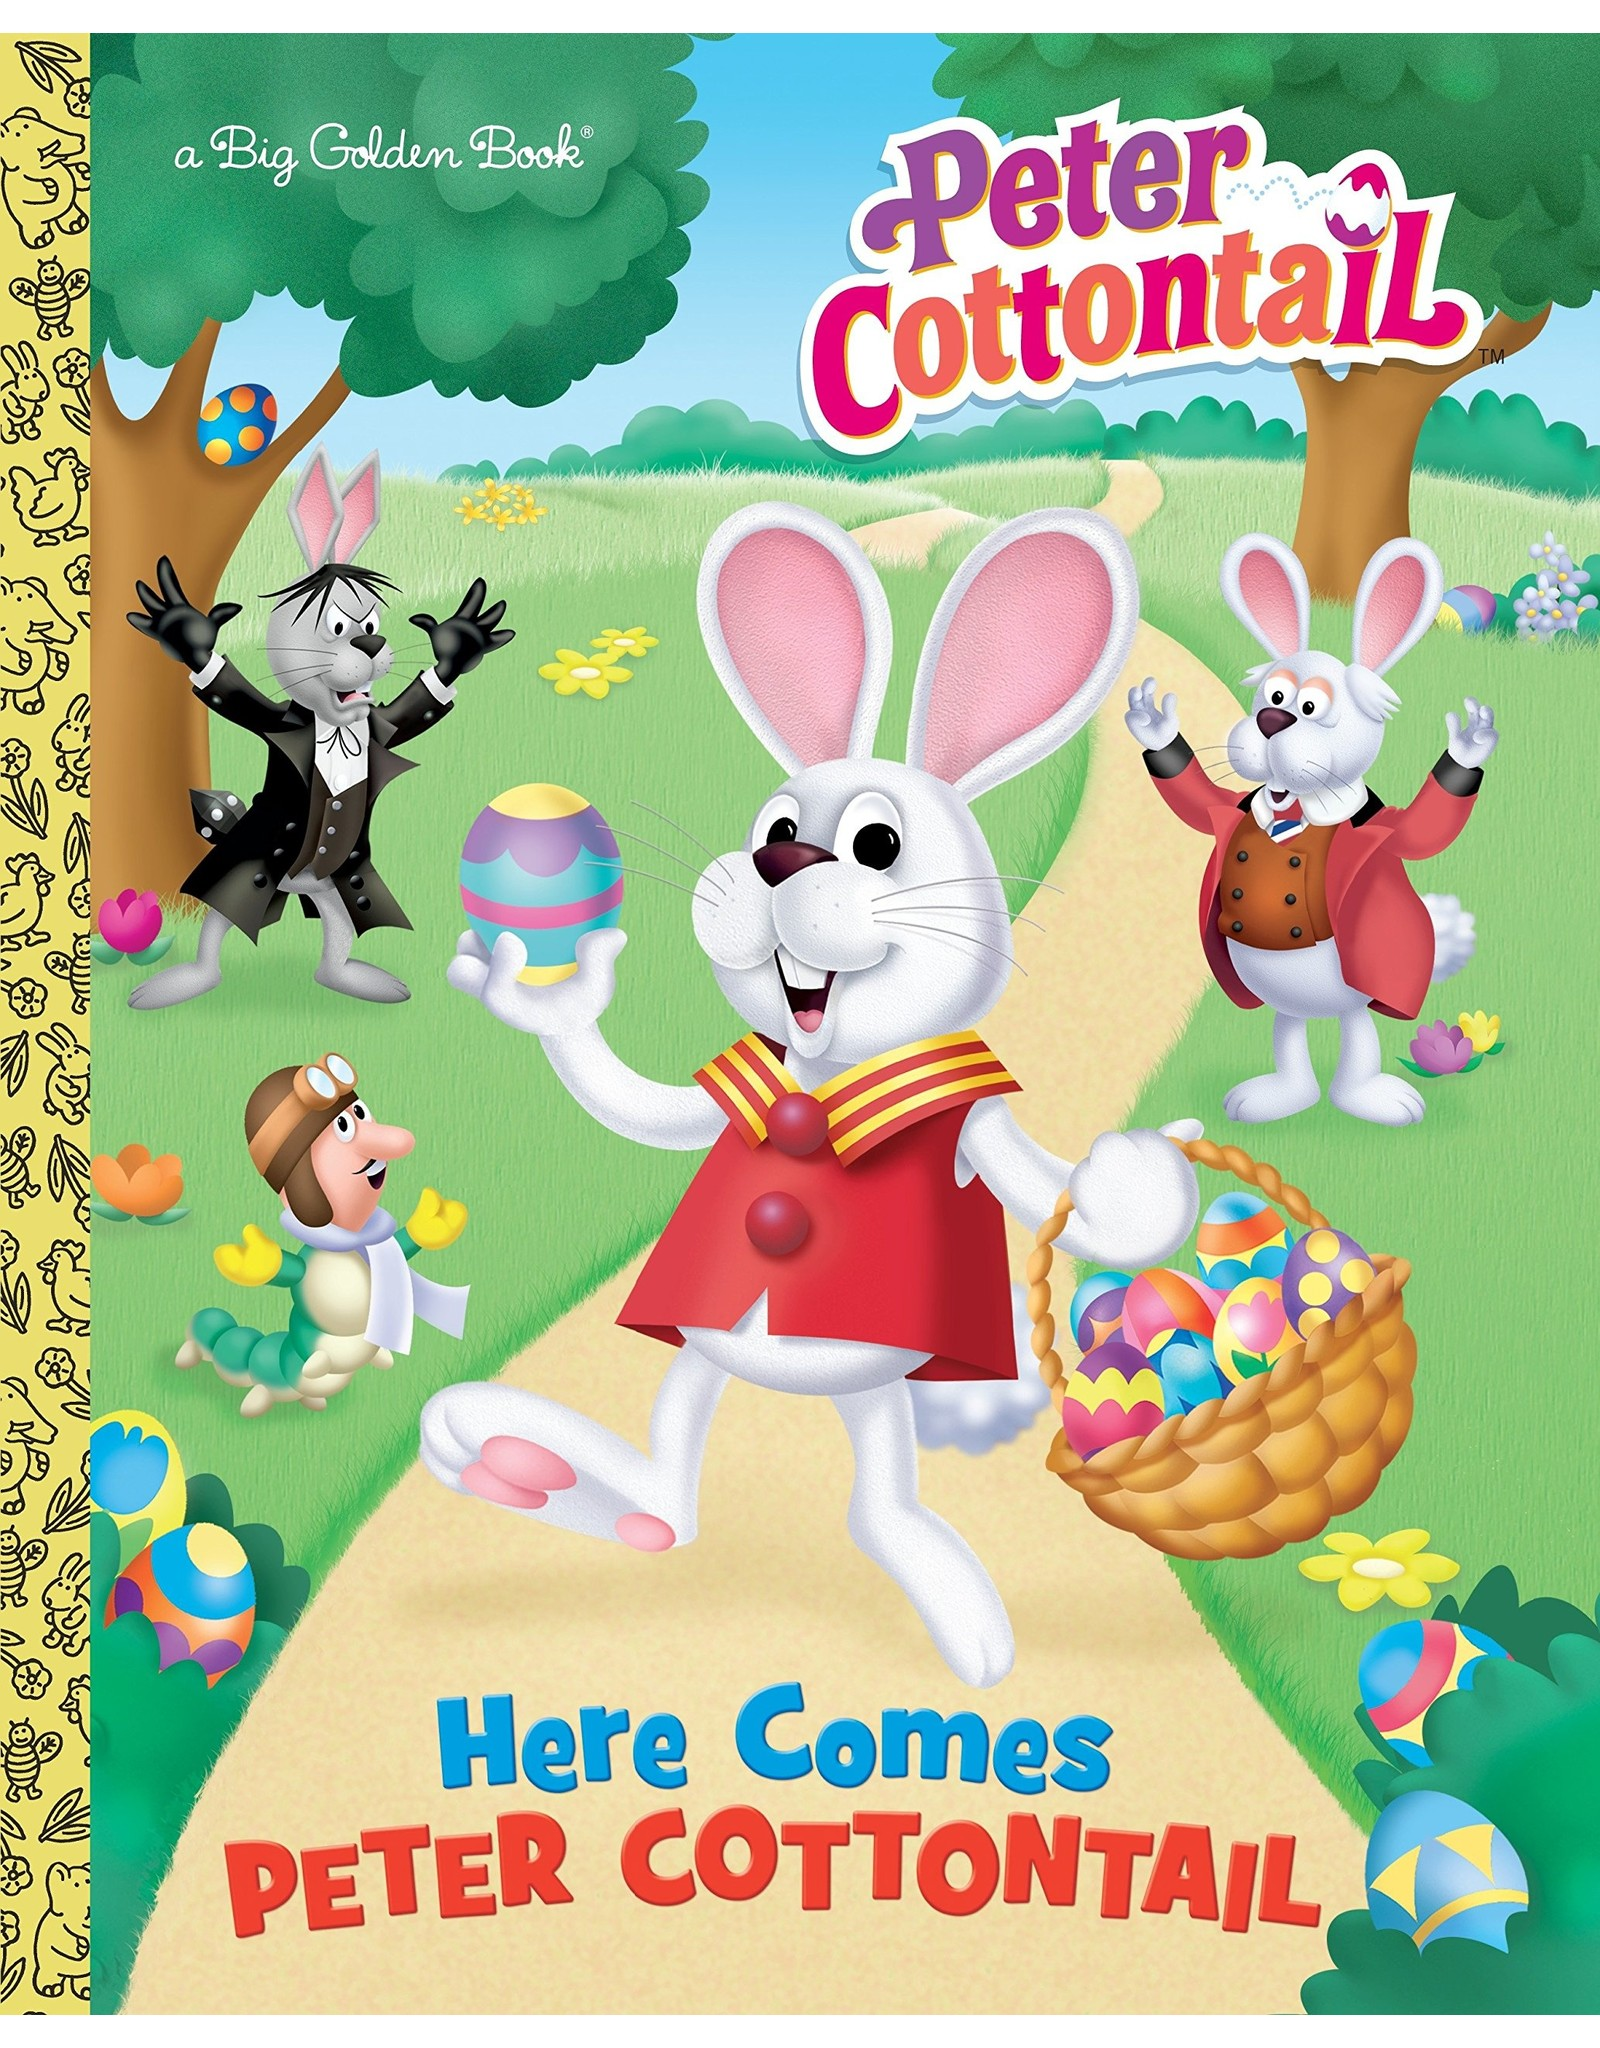 Penguin Random House HERE COMES PETER COTTONTAIL BIG GOLDEN BOOK (PETER COTTONTAIL)